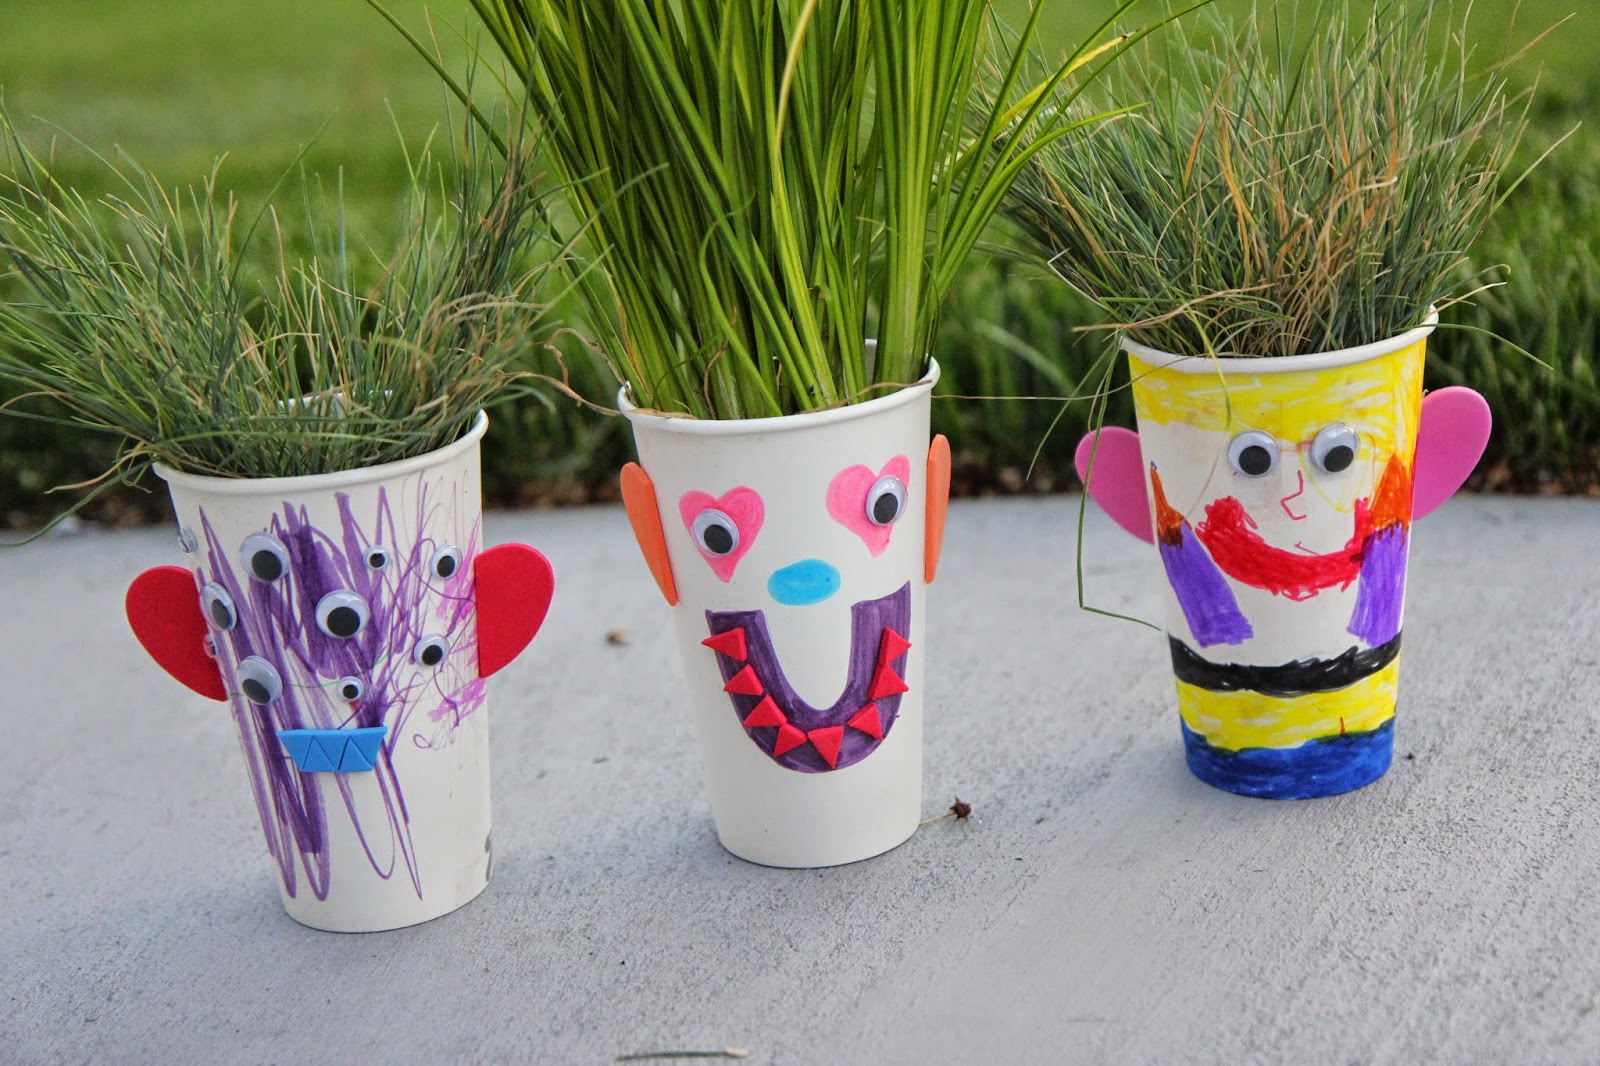 Decorating Plastic Tumblers Toddler Approved Make Your Own Grass Hair Salon From The Garden